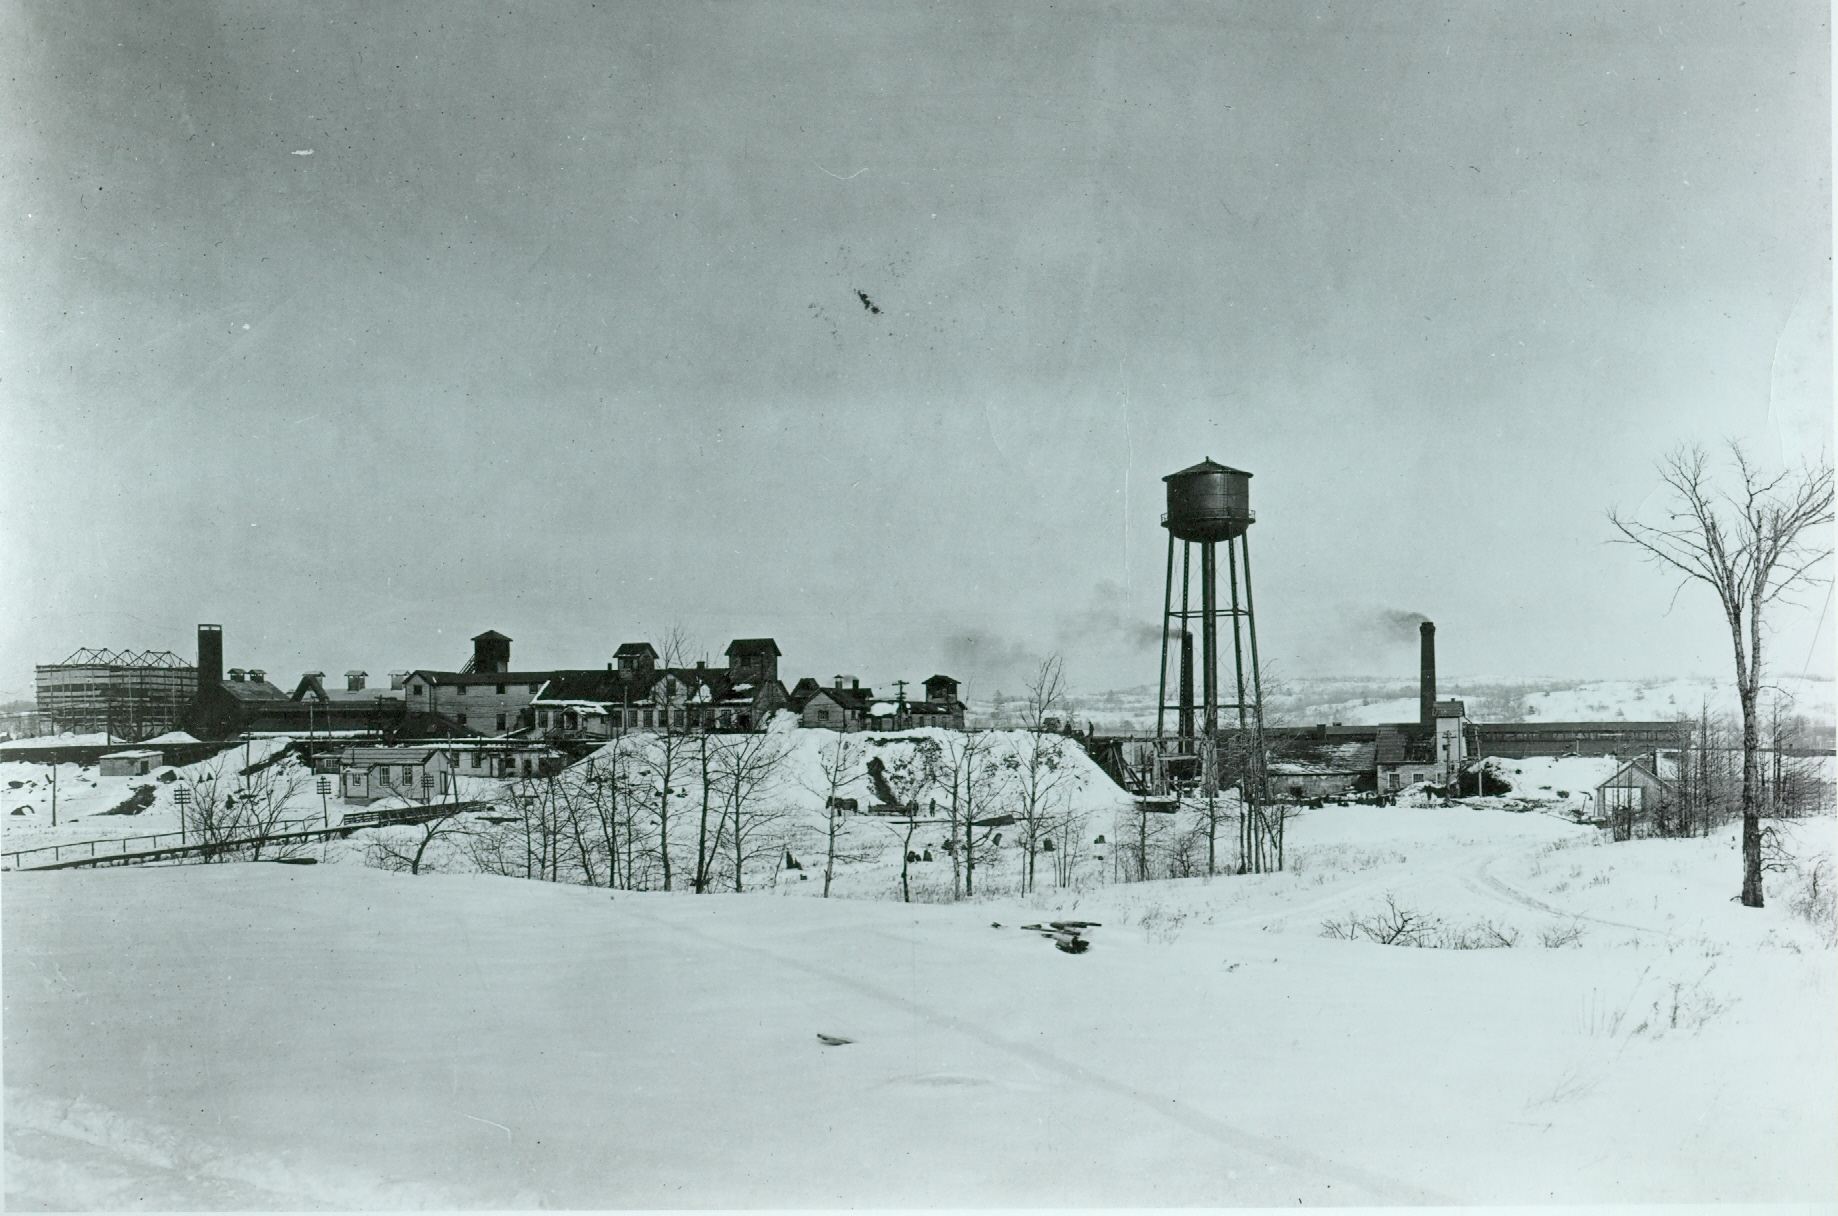 1920 Deloro Smelting and refining Co. looking east.  Building with cupolas is silver plant.  Cobalt oxide behind water tower.jpg